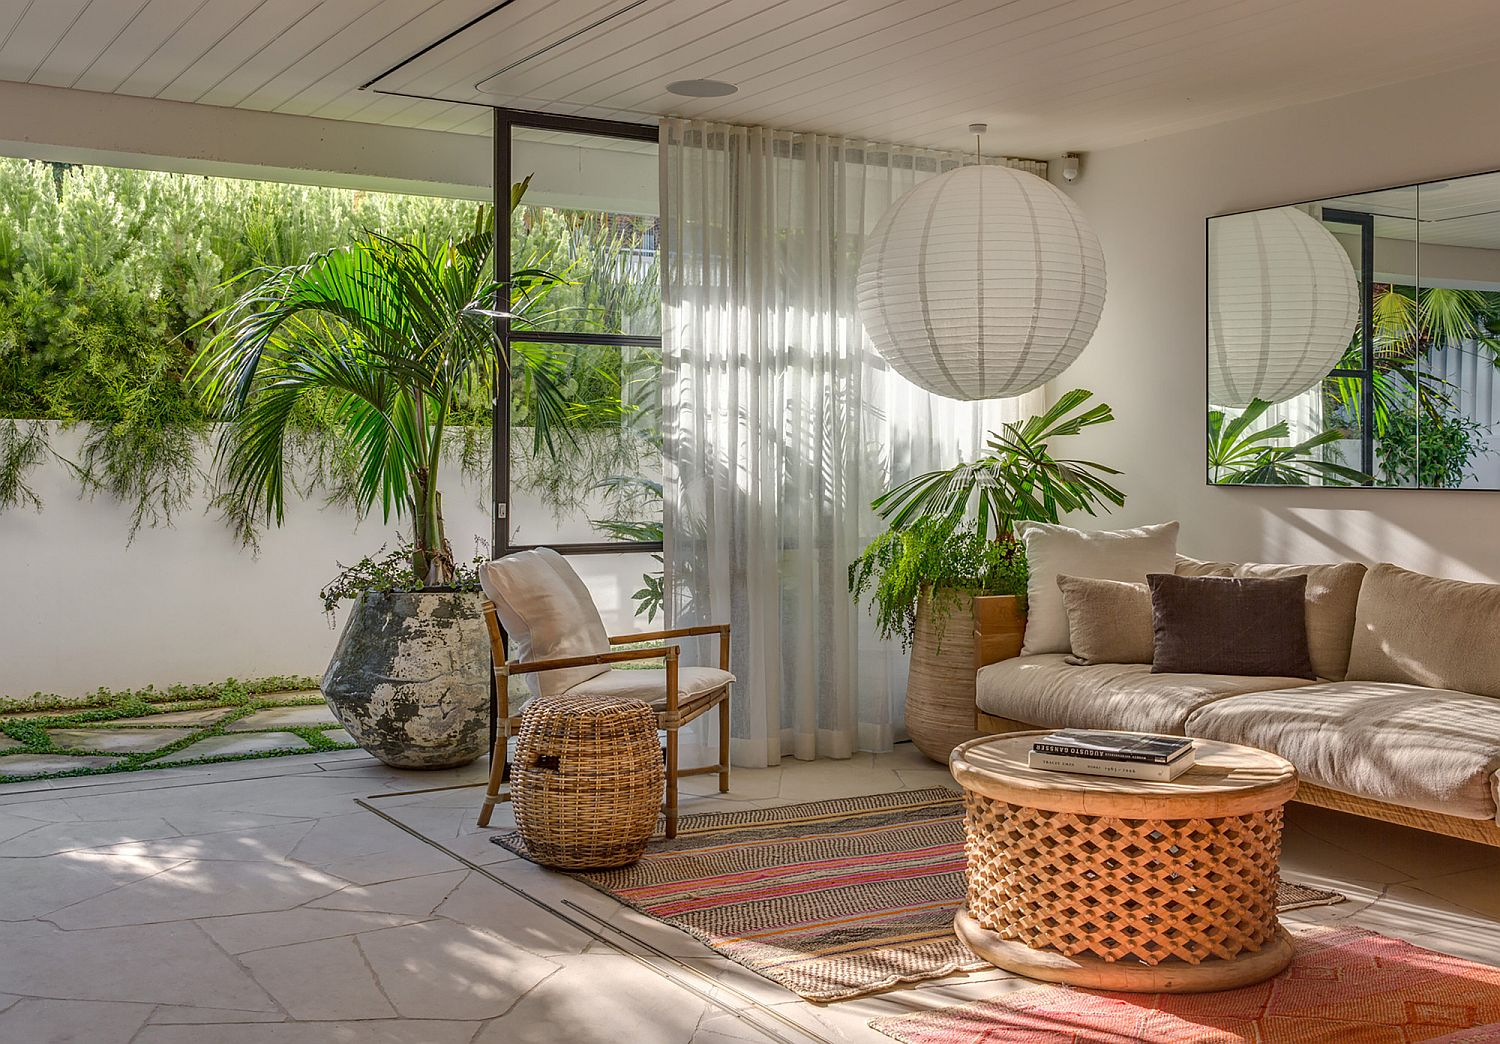 Creating a relaxing sitting zone with smart indoor-outdoor interplay